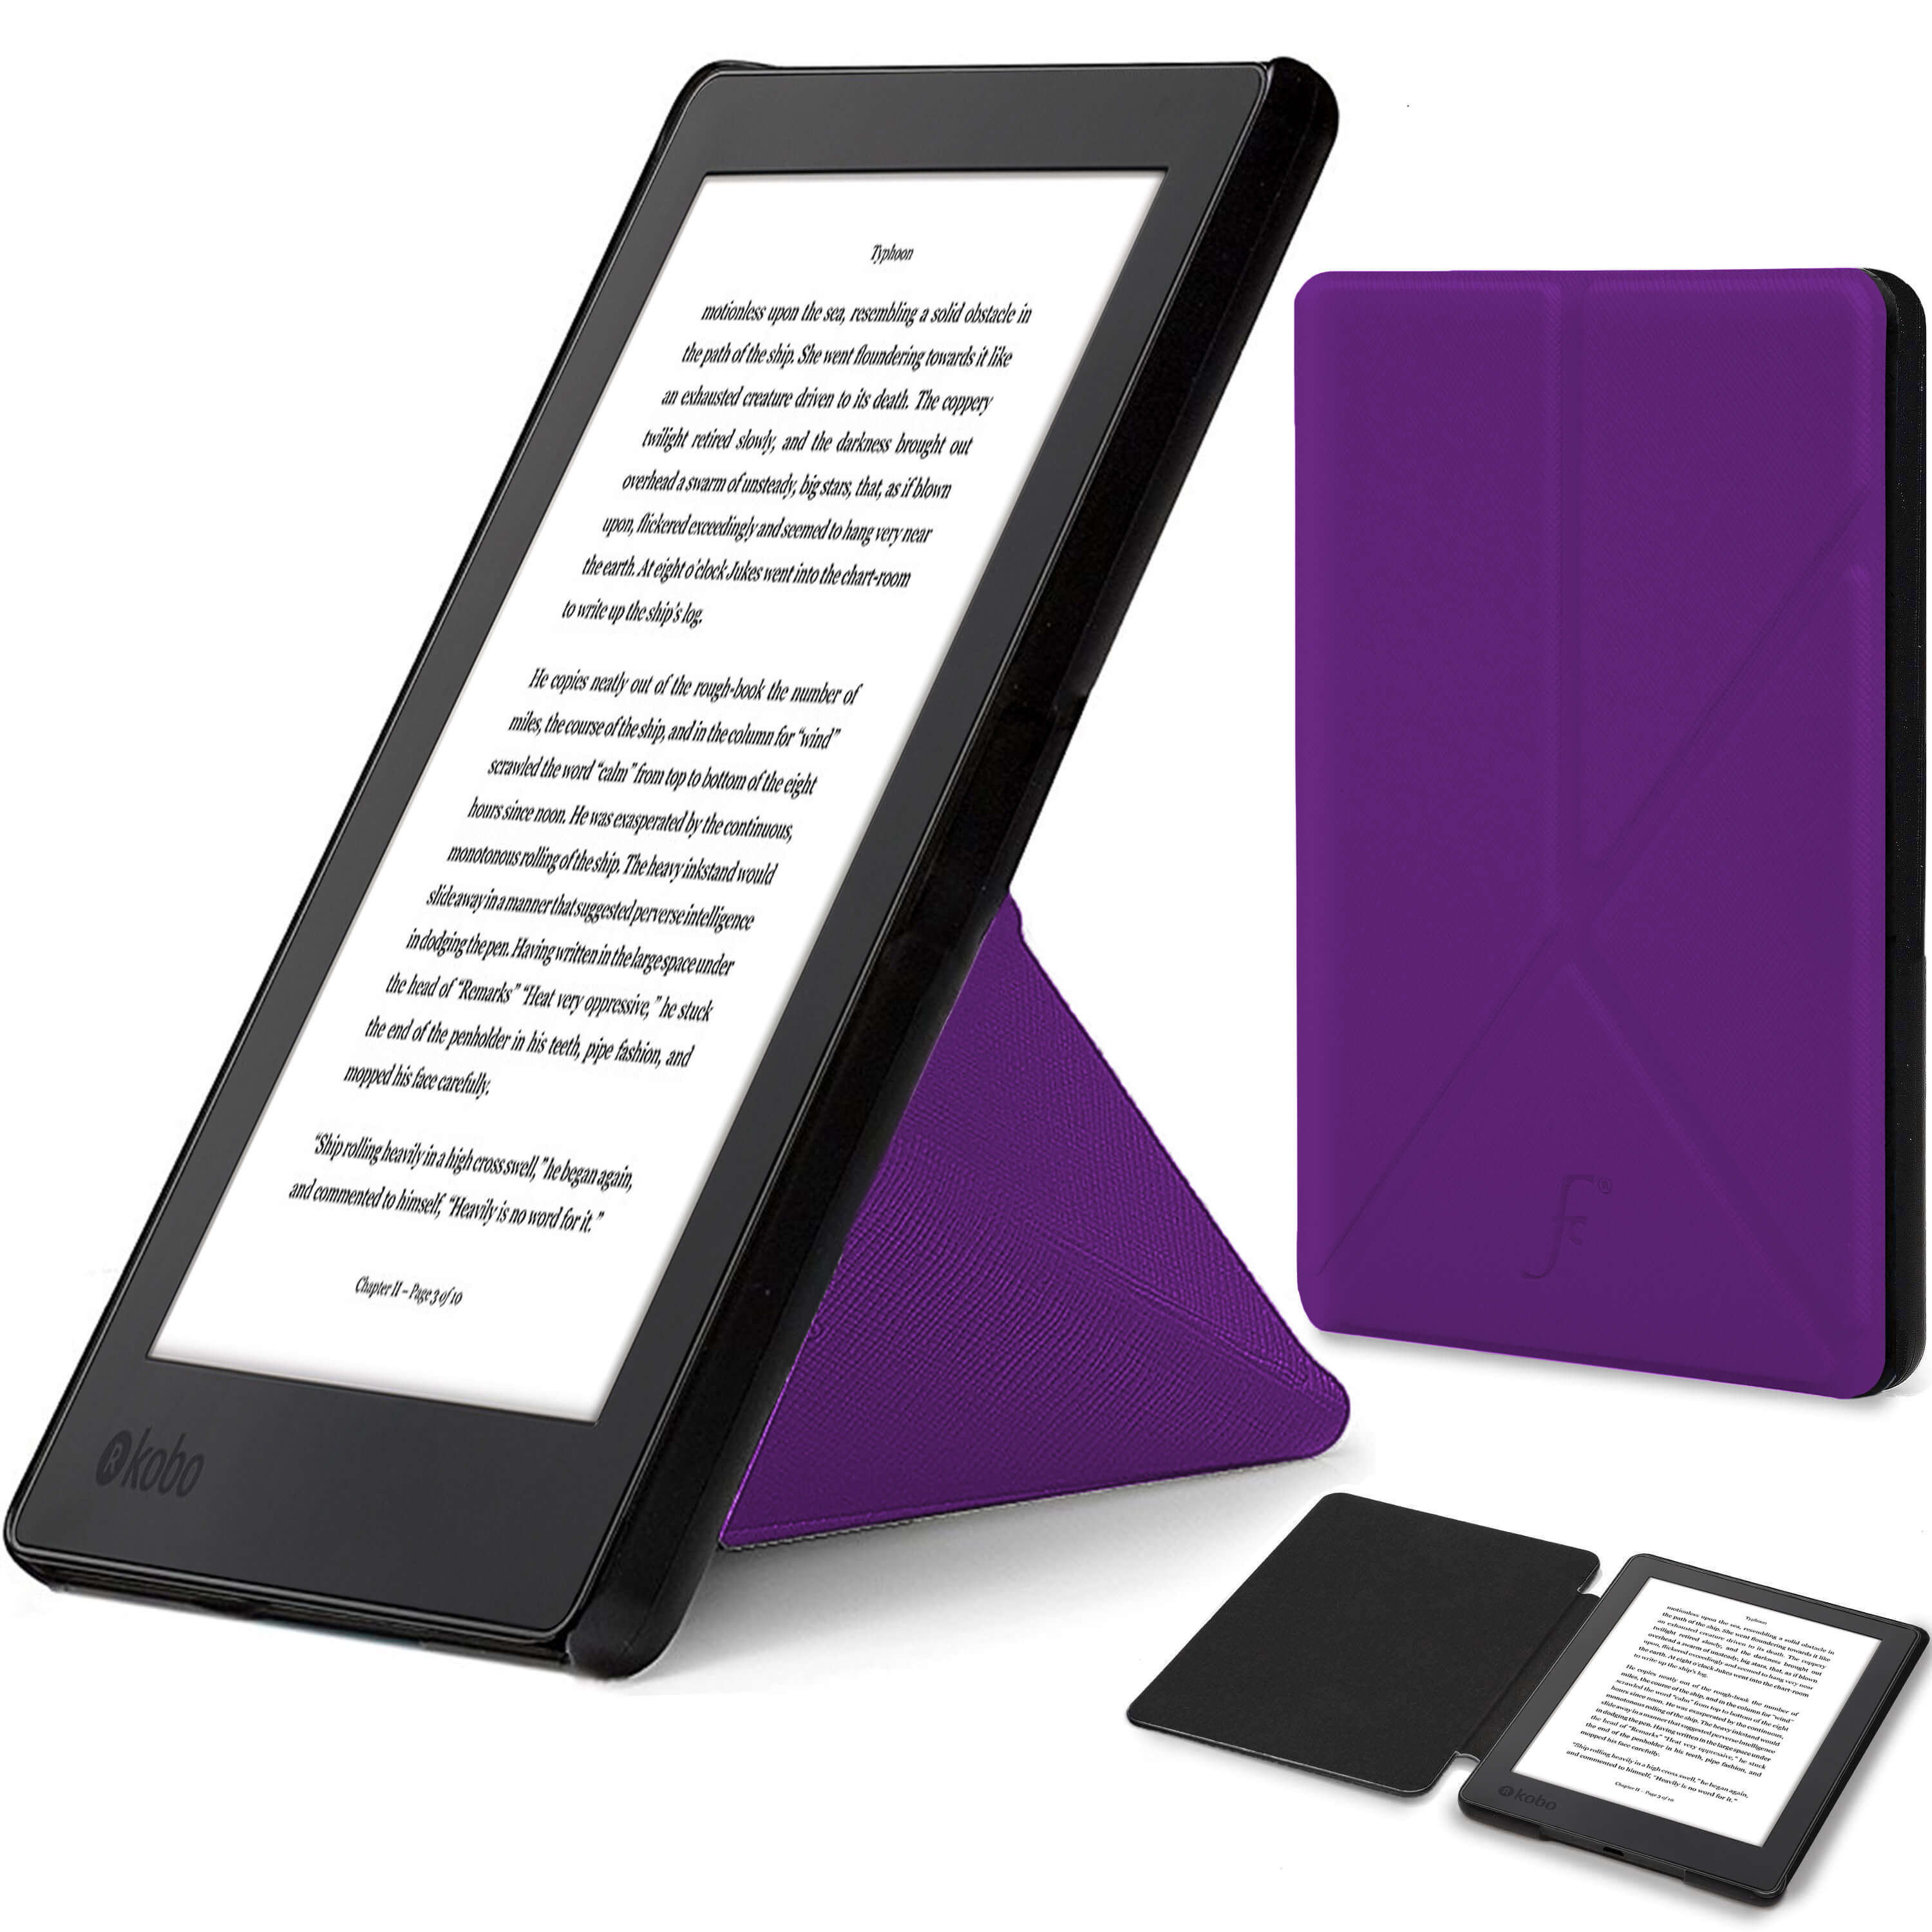 You re viewing  Forefront Cases® Kobo Aura H2O Edition 2 Origami Smart Case  Cover Stand (PURPLE) £39.99 £9.99 inc. edc3190f61f5